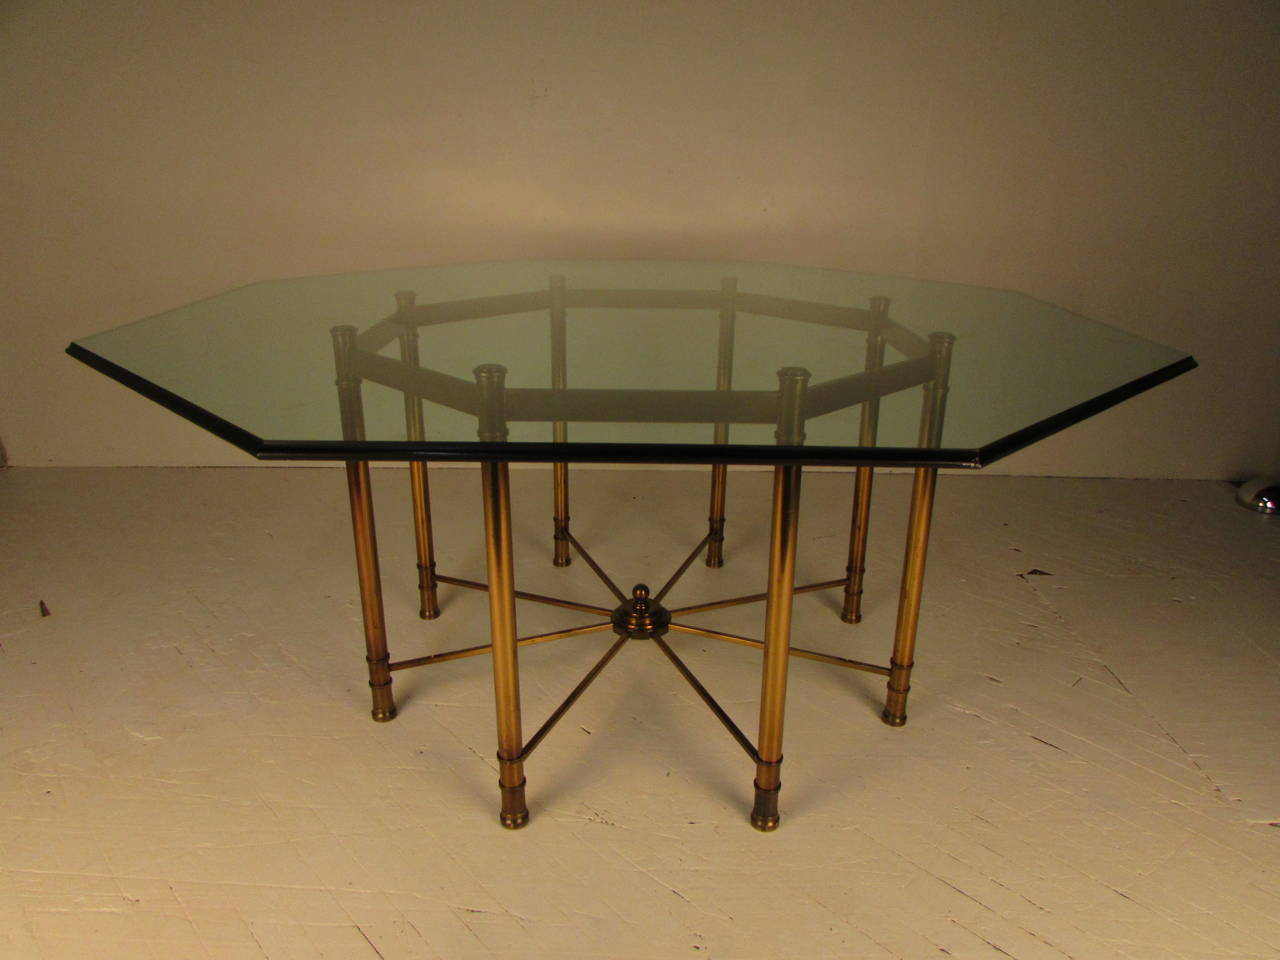 Ordinaire Directoire Style Octagonal Dining Table With Original Glass Top And  Characteristic Mastercraft Patina On Brass.